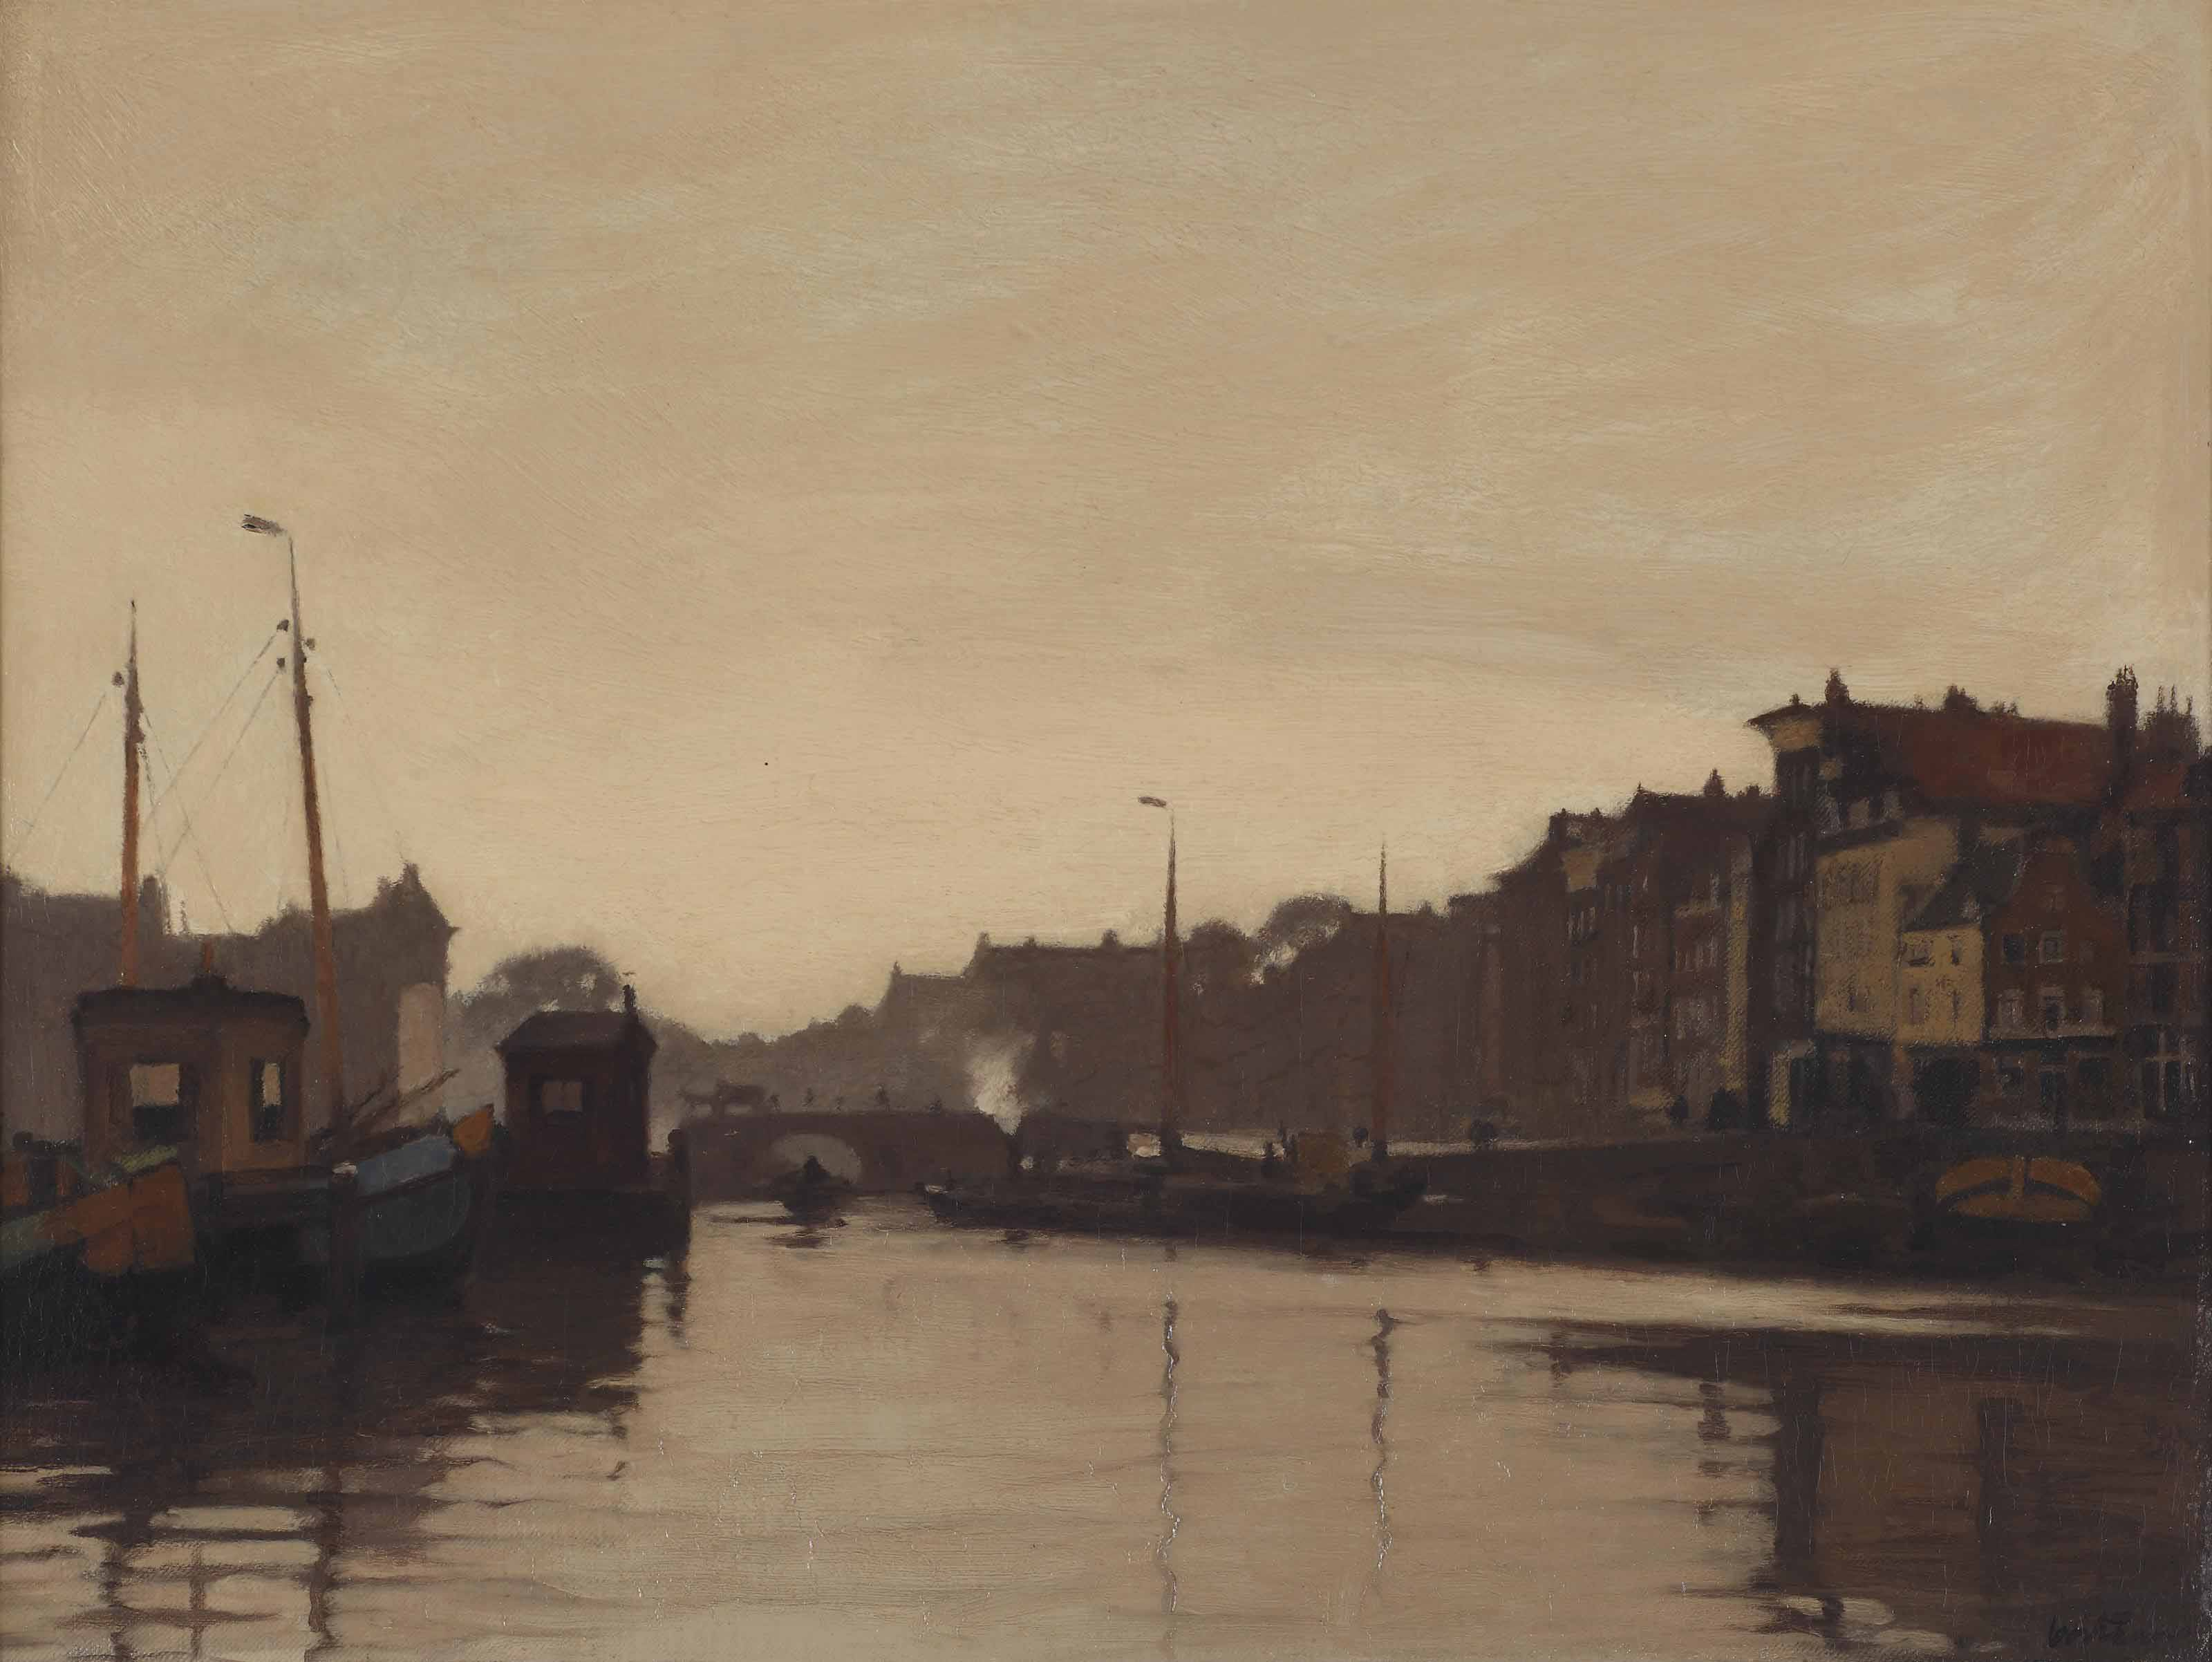 A view of the Waalseilandsgracht and the Kraansluis, Amsterdam